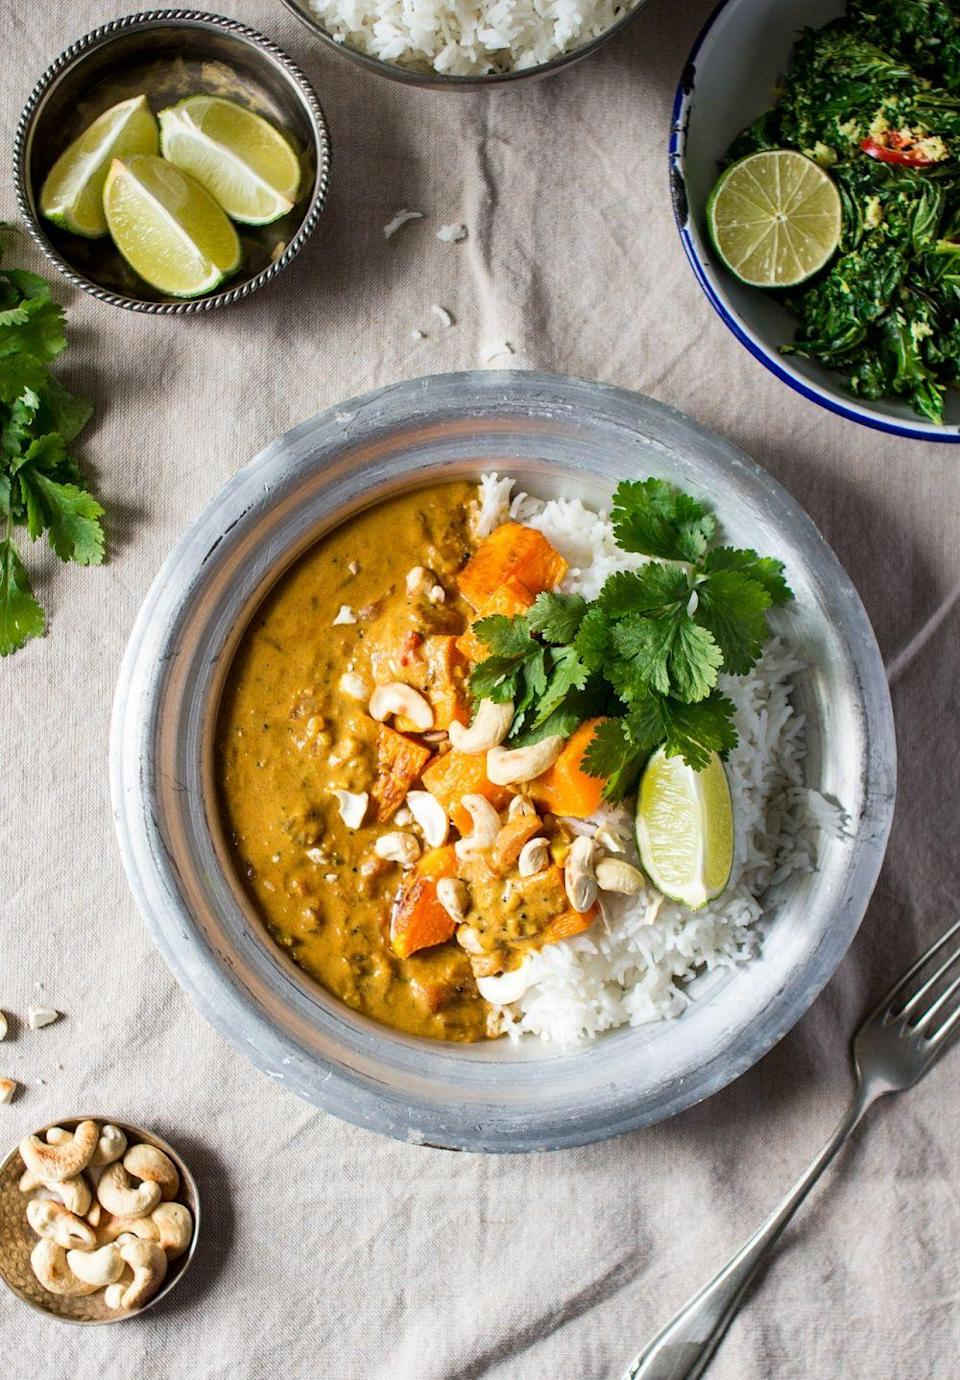 """<p>Served with basmati rice, chopped cashews, and spiced coconut-infused pumpkin curry, this warm dish is sure to satisfy. </p><p><strong>Get the recipe at <a href=""""http://www.lazycatkitchen.com/pumpkin-coconut-curry/"""" rel=""""nofollow noopener"""" target=""""_blank"""" data-ylk=""""slk:Lazy Cat Kitchen"""" class=""""link rapid-noclick-resp"""">Lazy Cat Kitchen</a></strong>. </p>"""